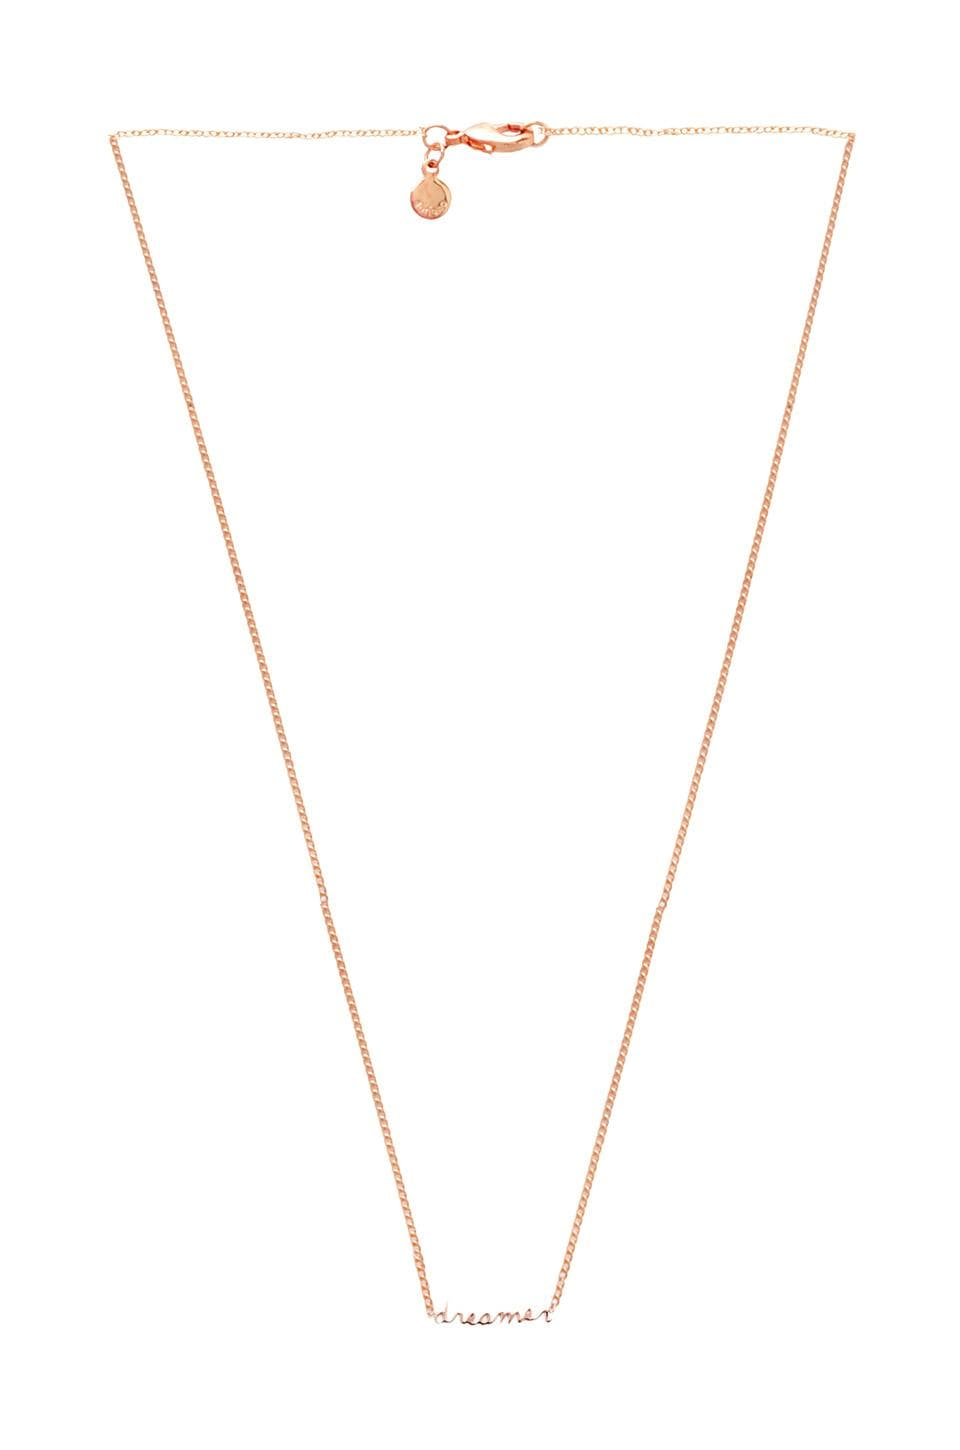 gorjana x REVOLVE EXCLUSIVE Dreamer Necklace in Rosegold